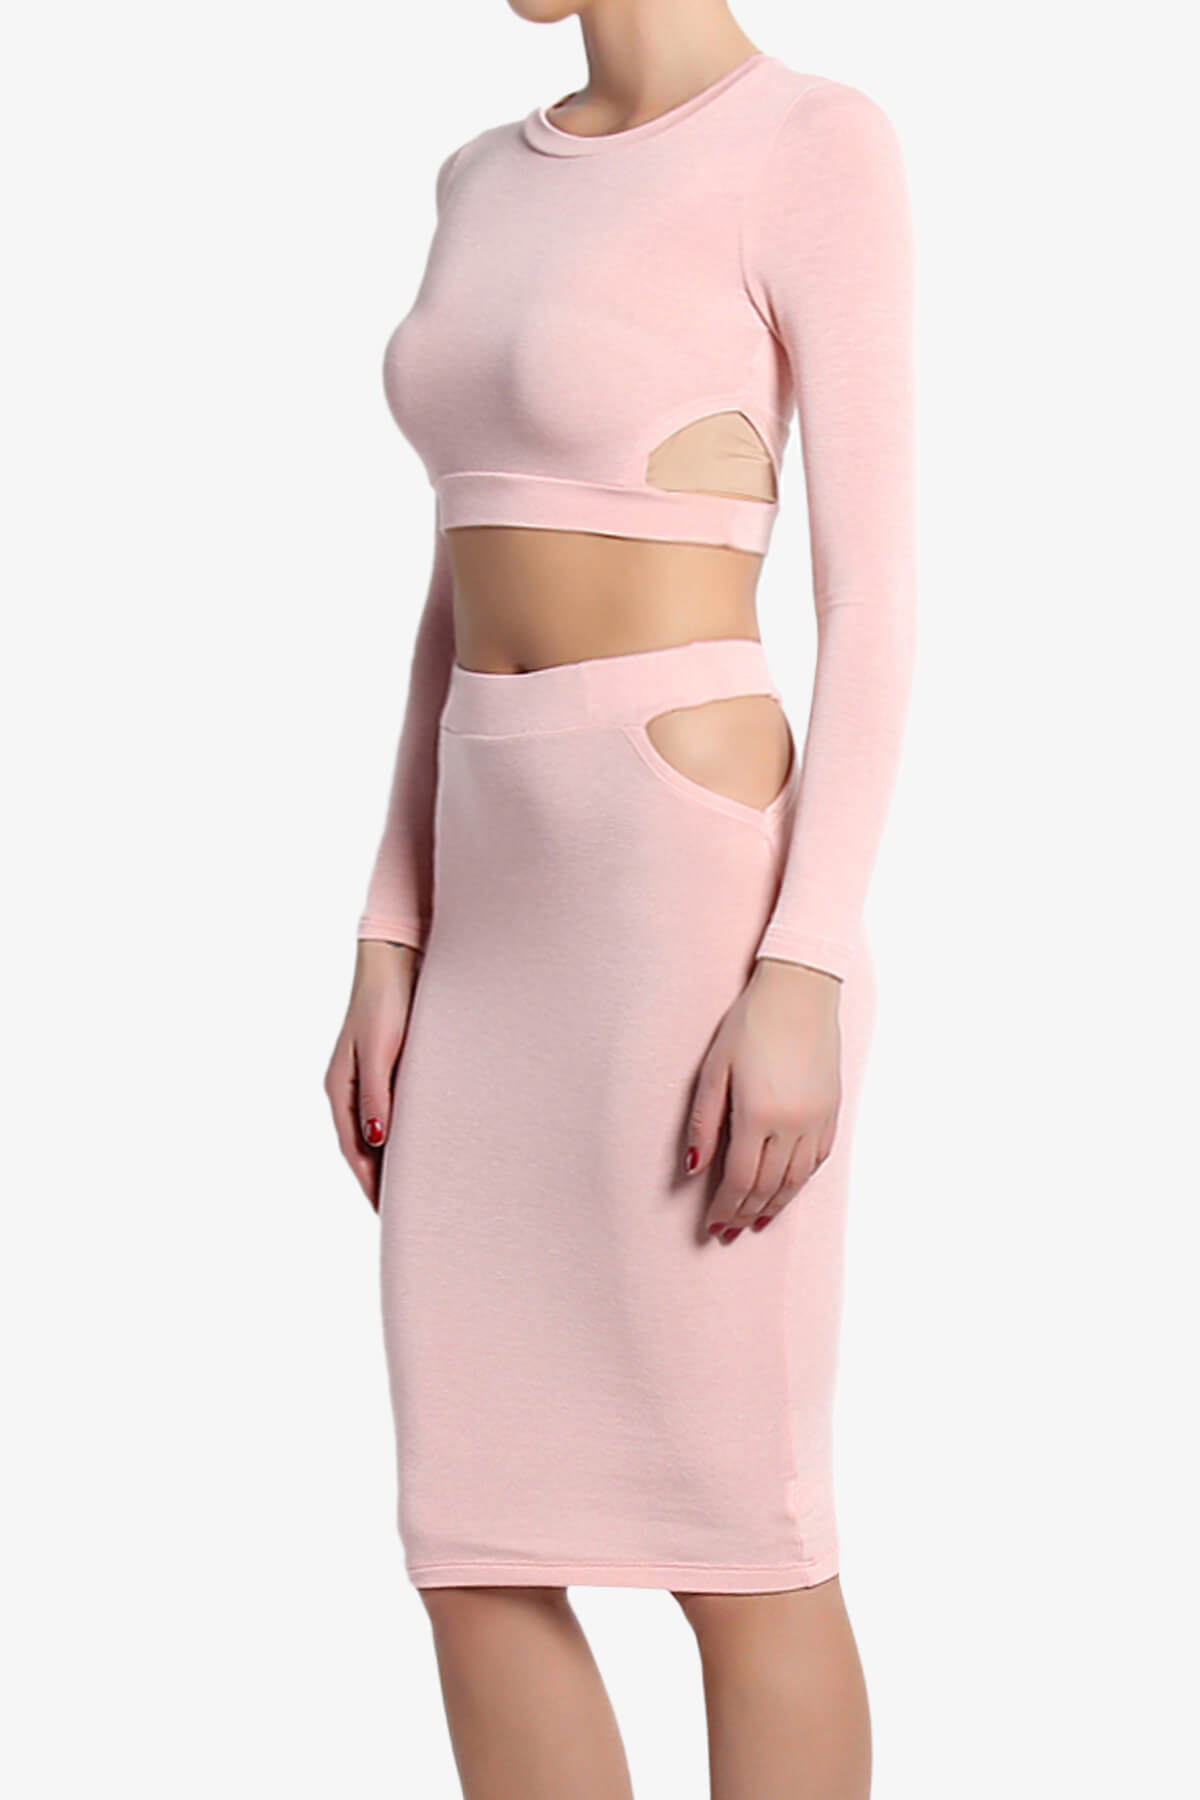 TheMogan Cut Out Long Sleeve Crop Top Pencil Skirt Two ...